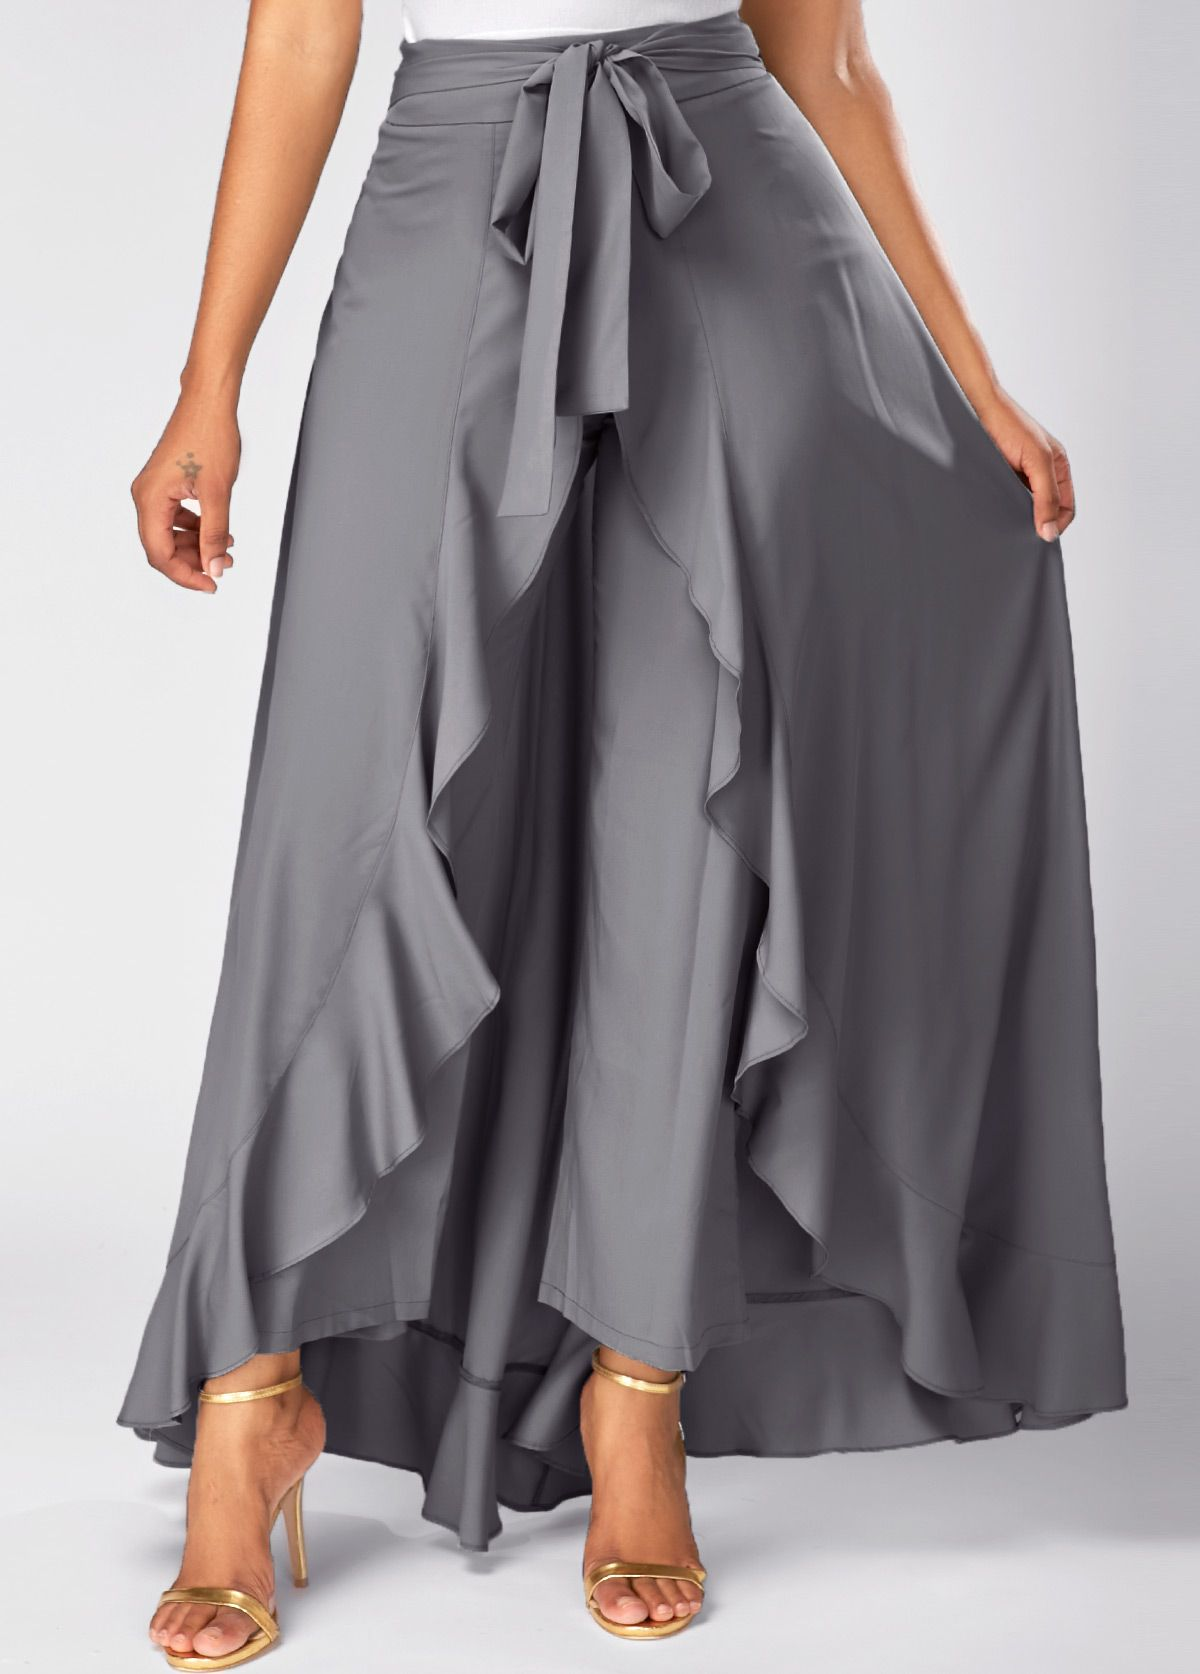 Tie Front Grey Side Zipper Overlay Pants On Sale Only Us